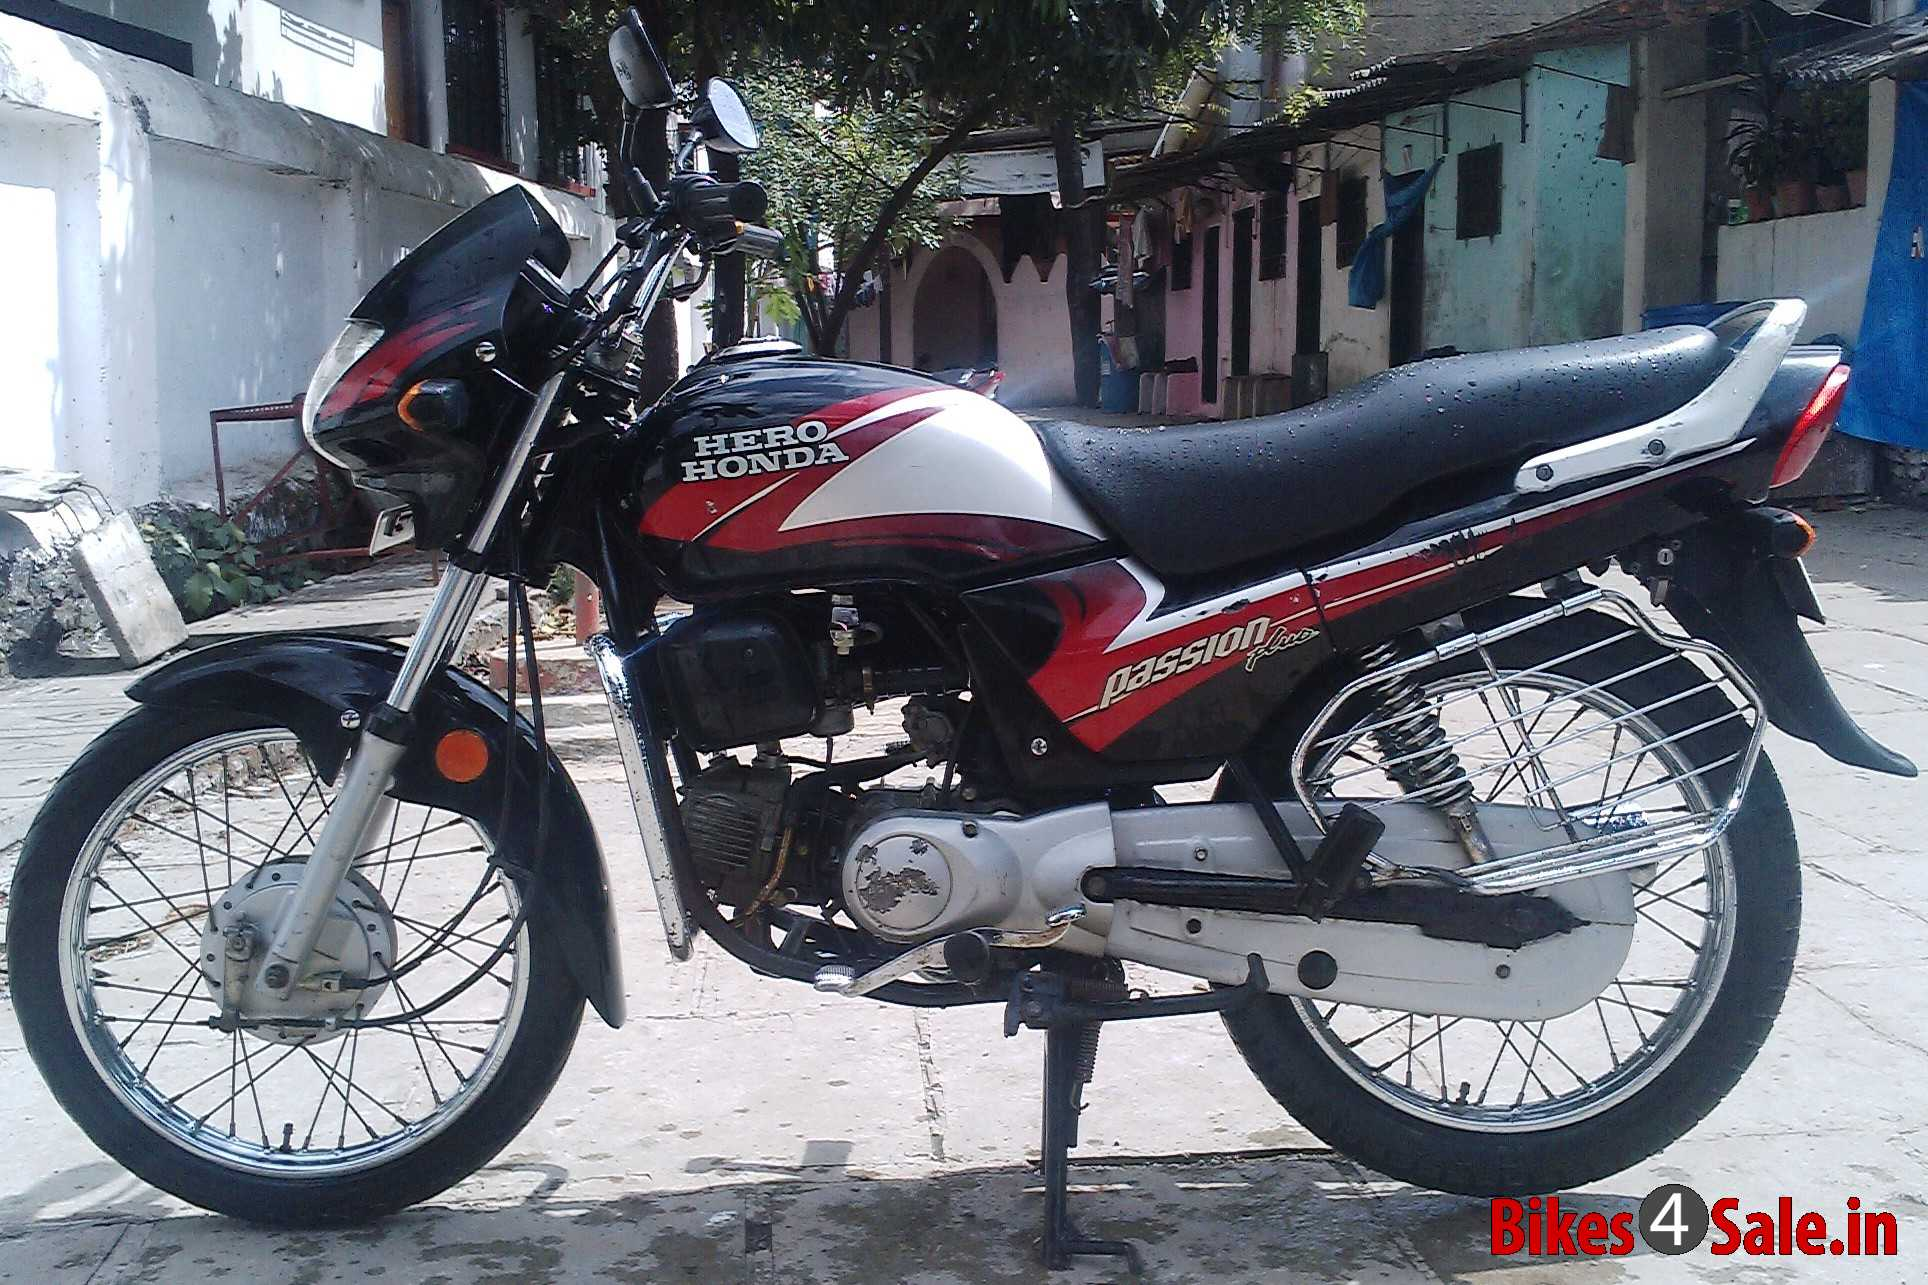 Hero Honda Passion Plus 2007 images #156055